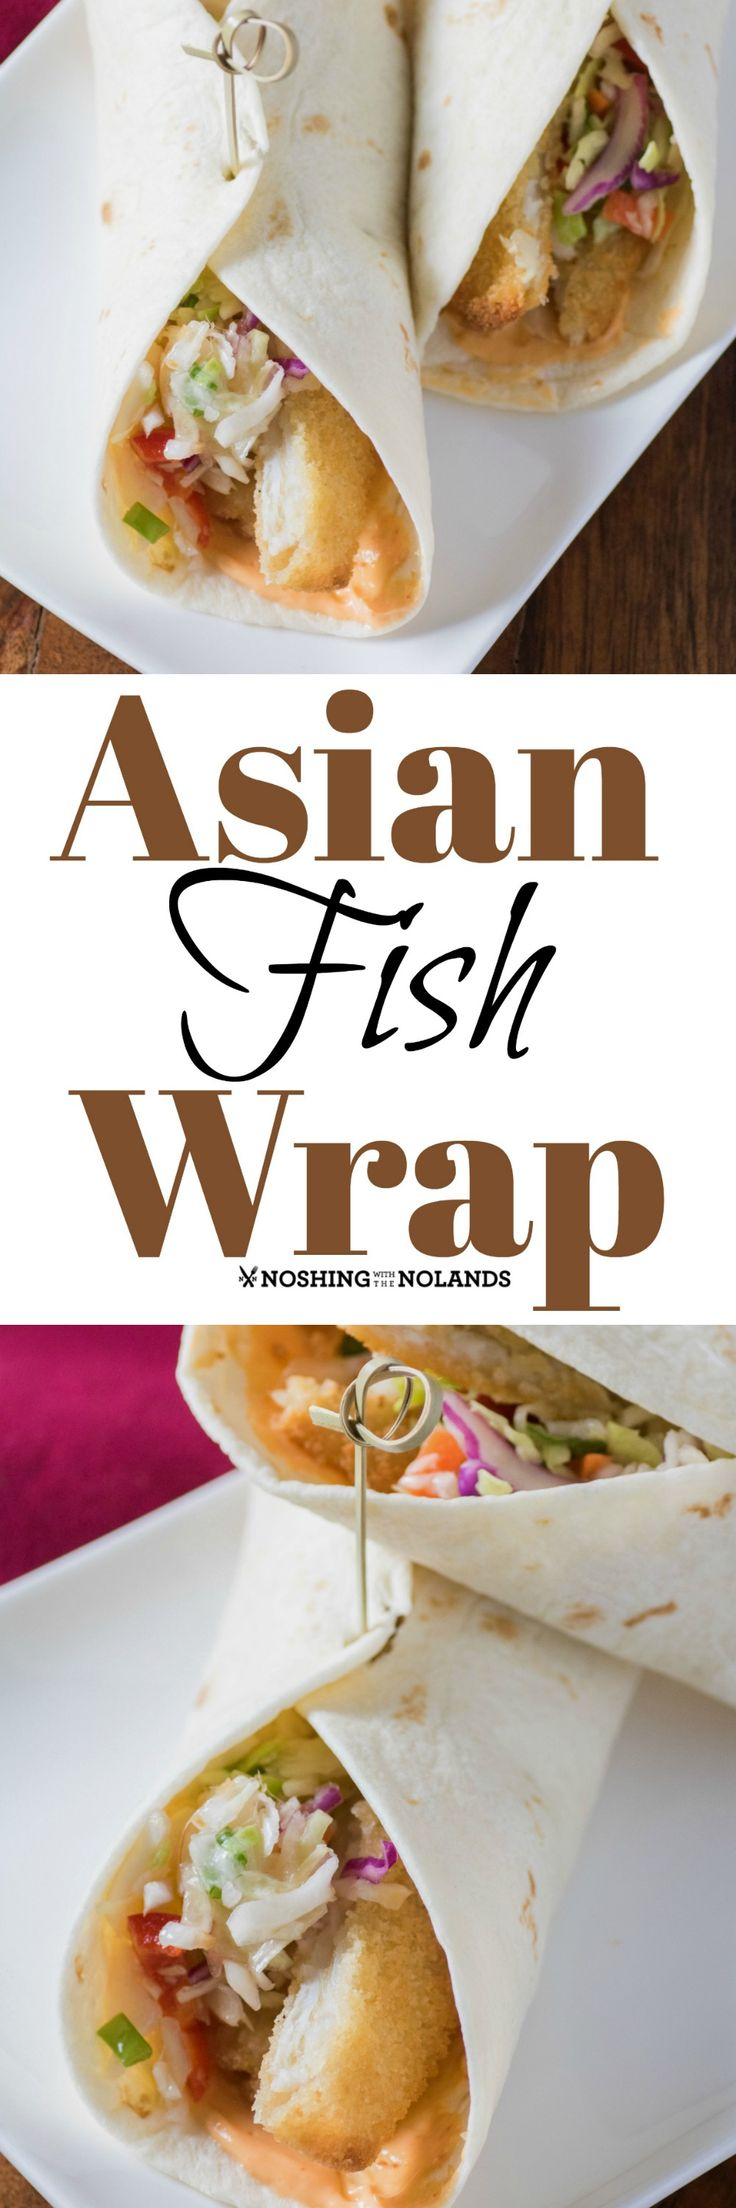 Asian Fish Wrap by Noshing With The Nolands is made simple using Janes ultimates Fish Panko Breaded Sole! It is crispy and delicious paired with the Asian slaw and Sriracha mayo!! #ad